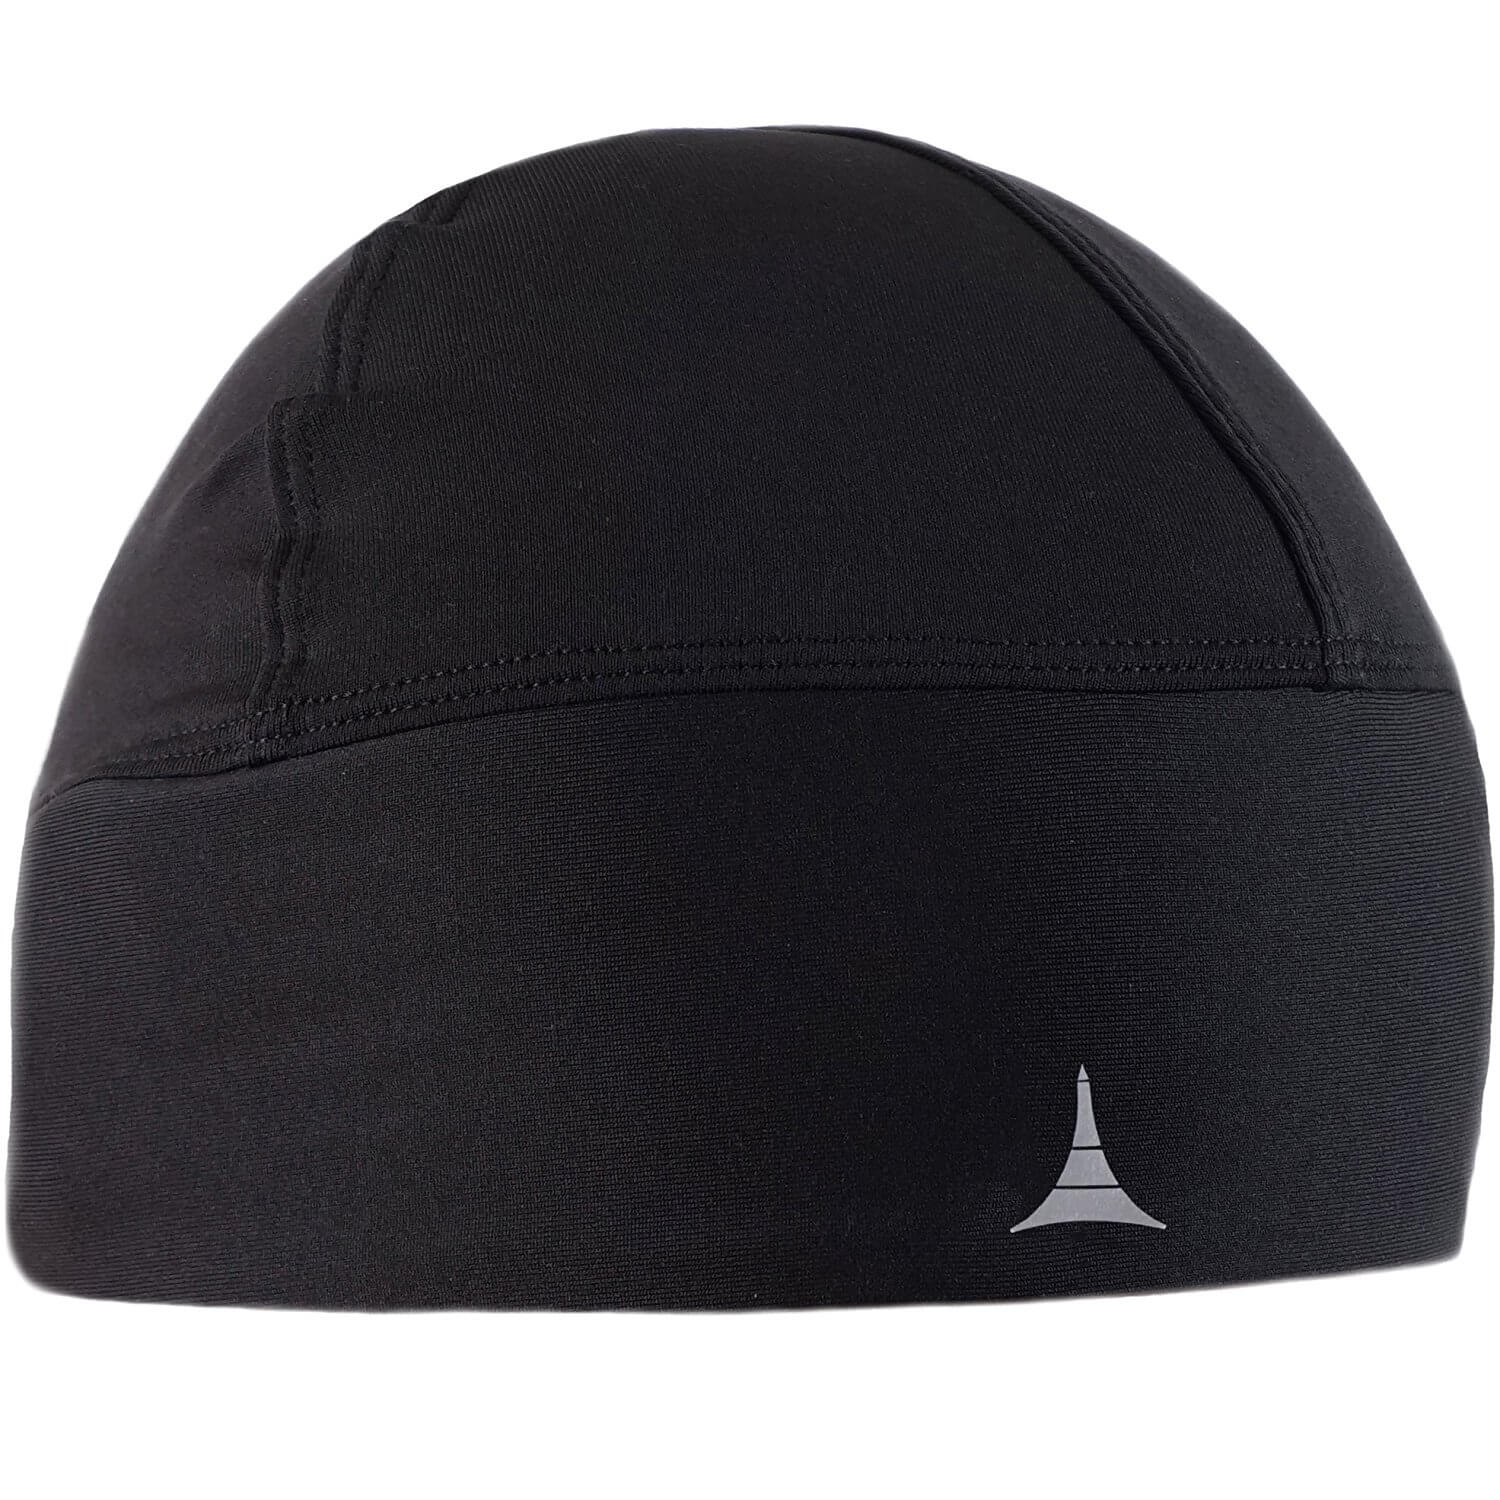 French Fitness Revolution Skull Cap.